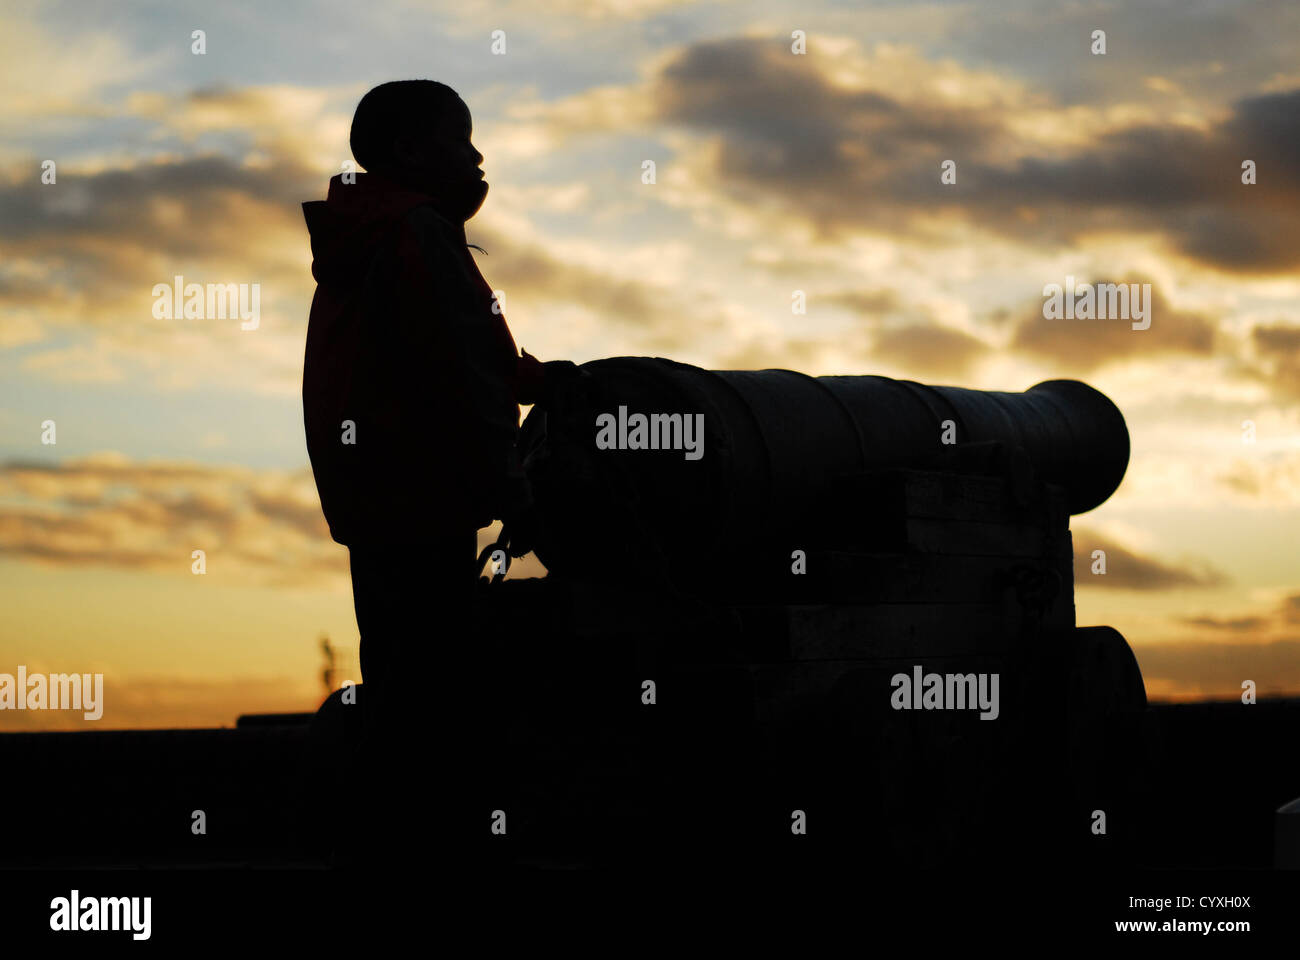 silhouette of a boy at sunset with a cannon - Stock Image